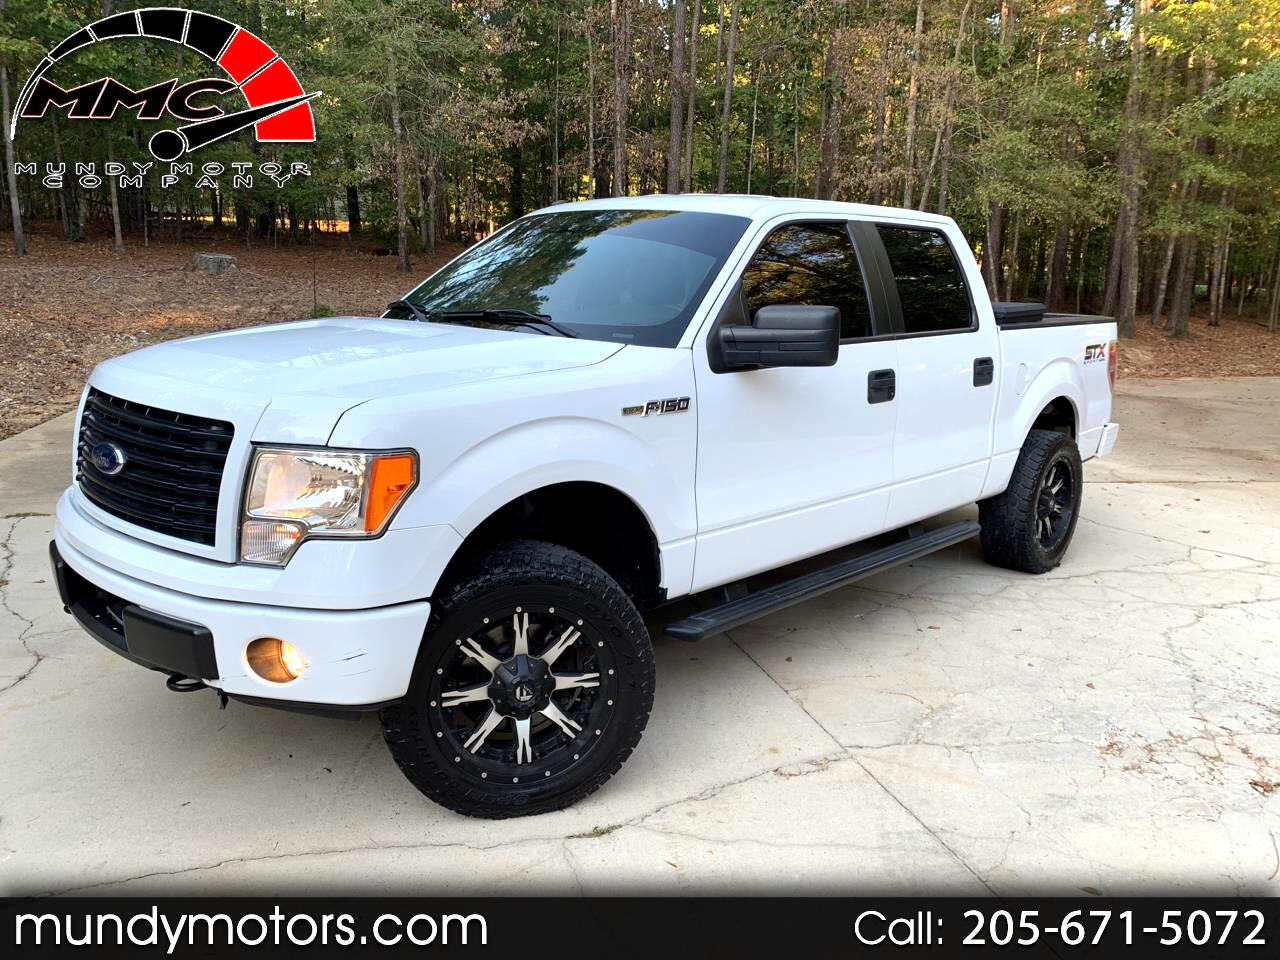 2014 Ford F-150 SuperCrew Crew Cab 139